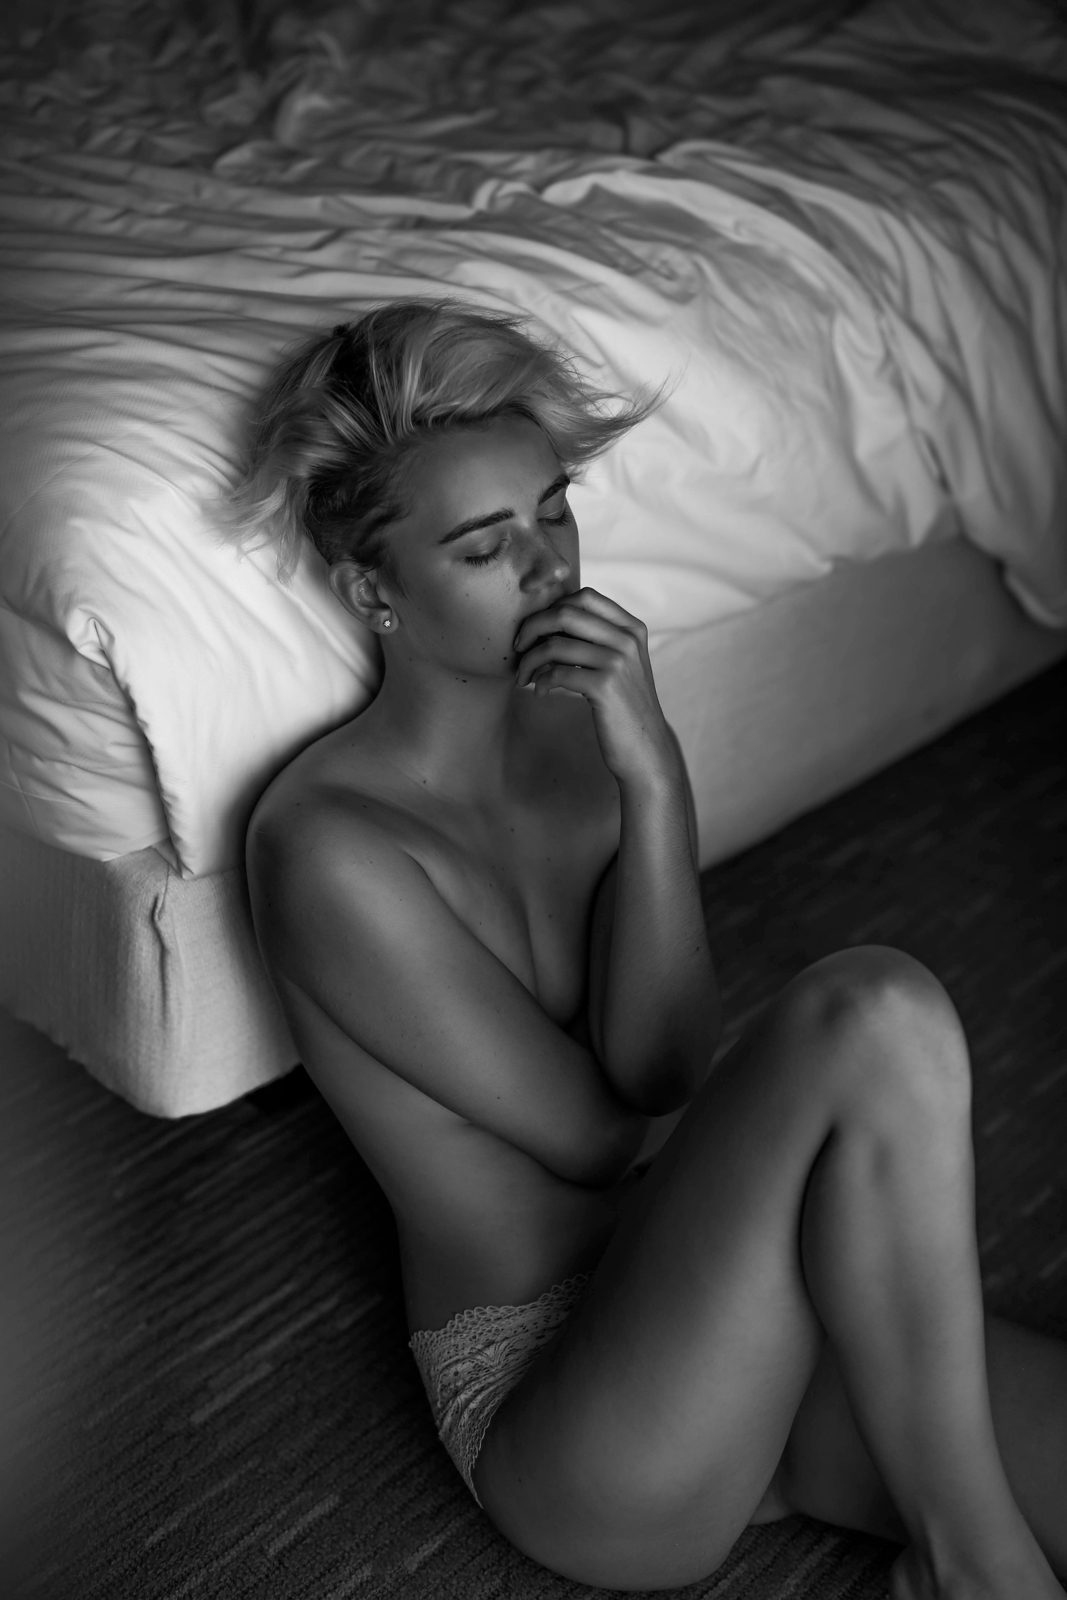 Don't be alone tonight Women  Chelsey Boll   // lionsmag.com - premium nude photography magazine